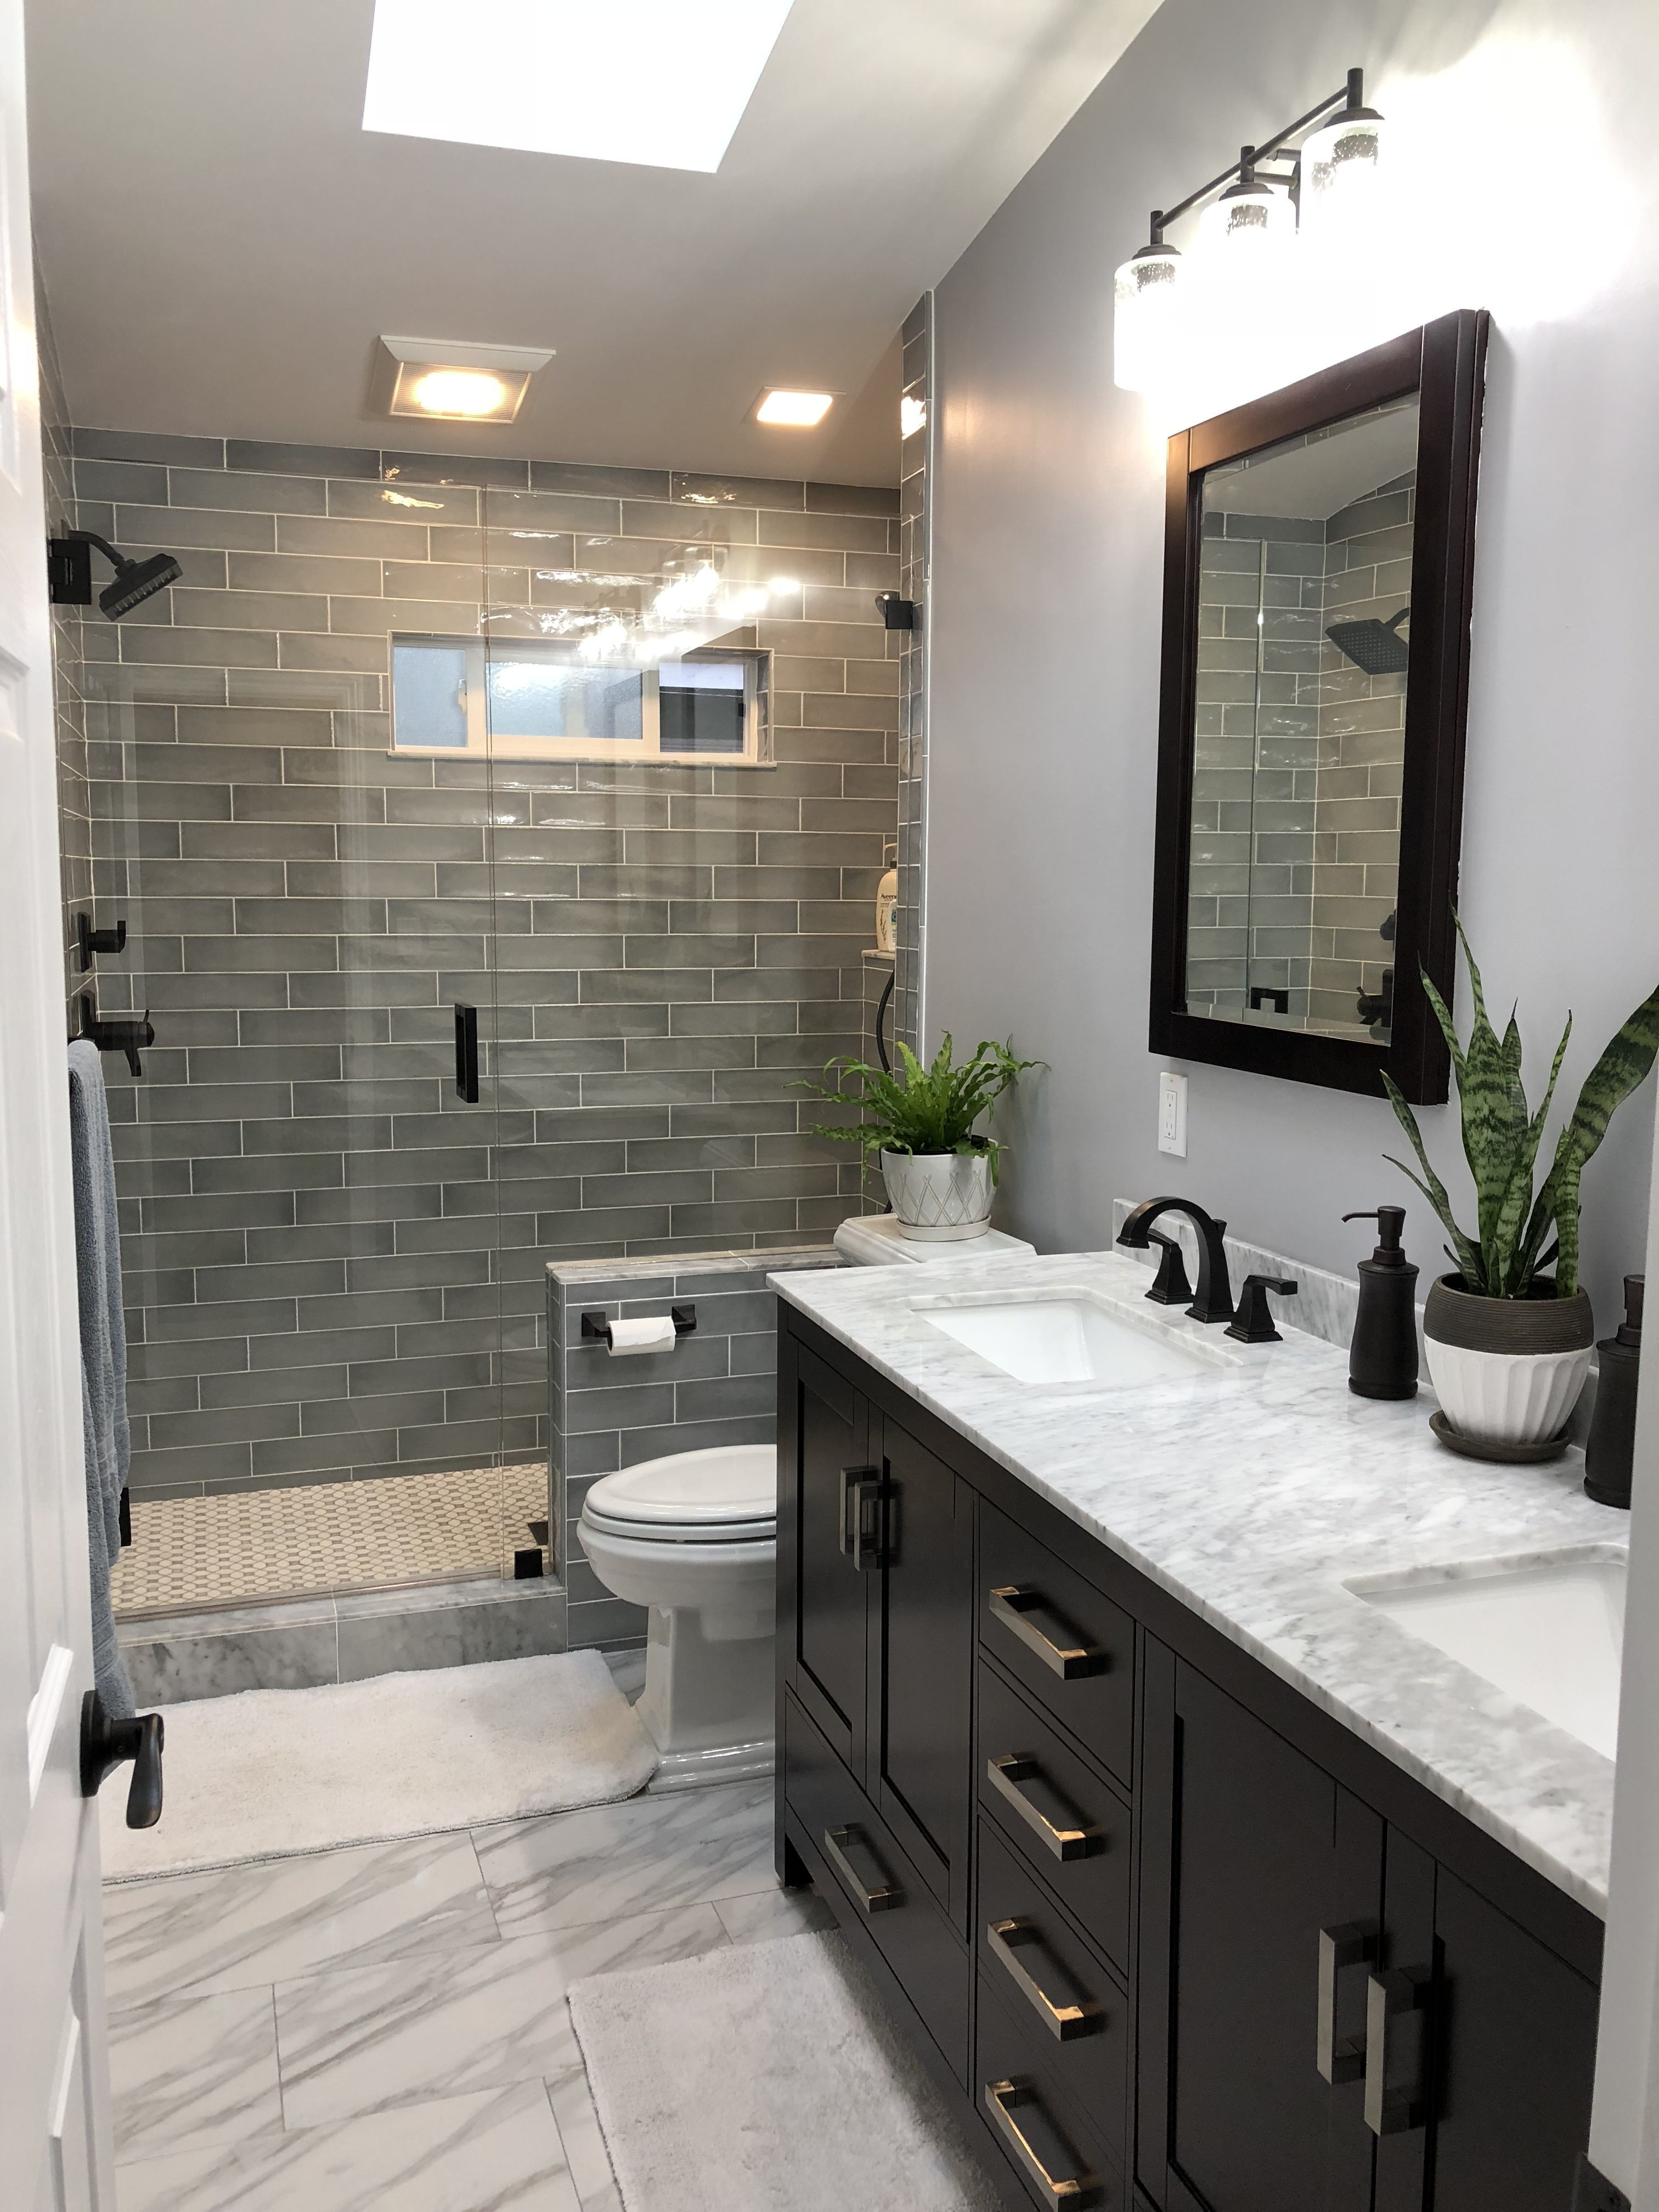 I Like The Extra Storage In The Shower Is Recessed And Hidden Longbathroomdesign Small Bathroom Remodel Bathroom Design Luxury Bathroom Remodel Master